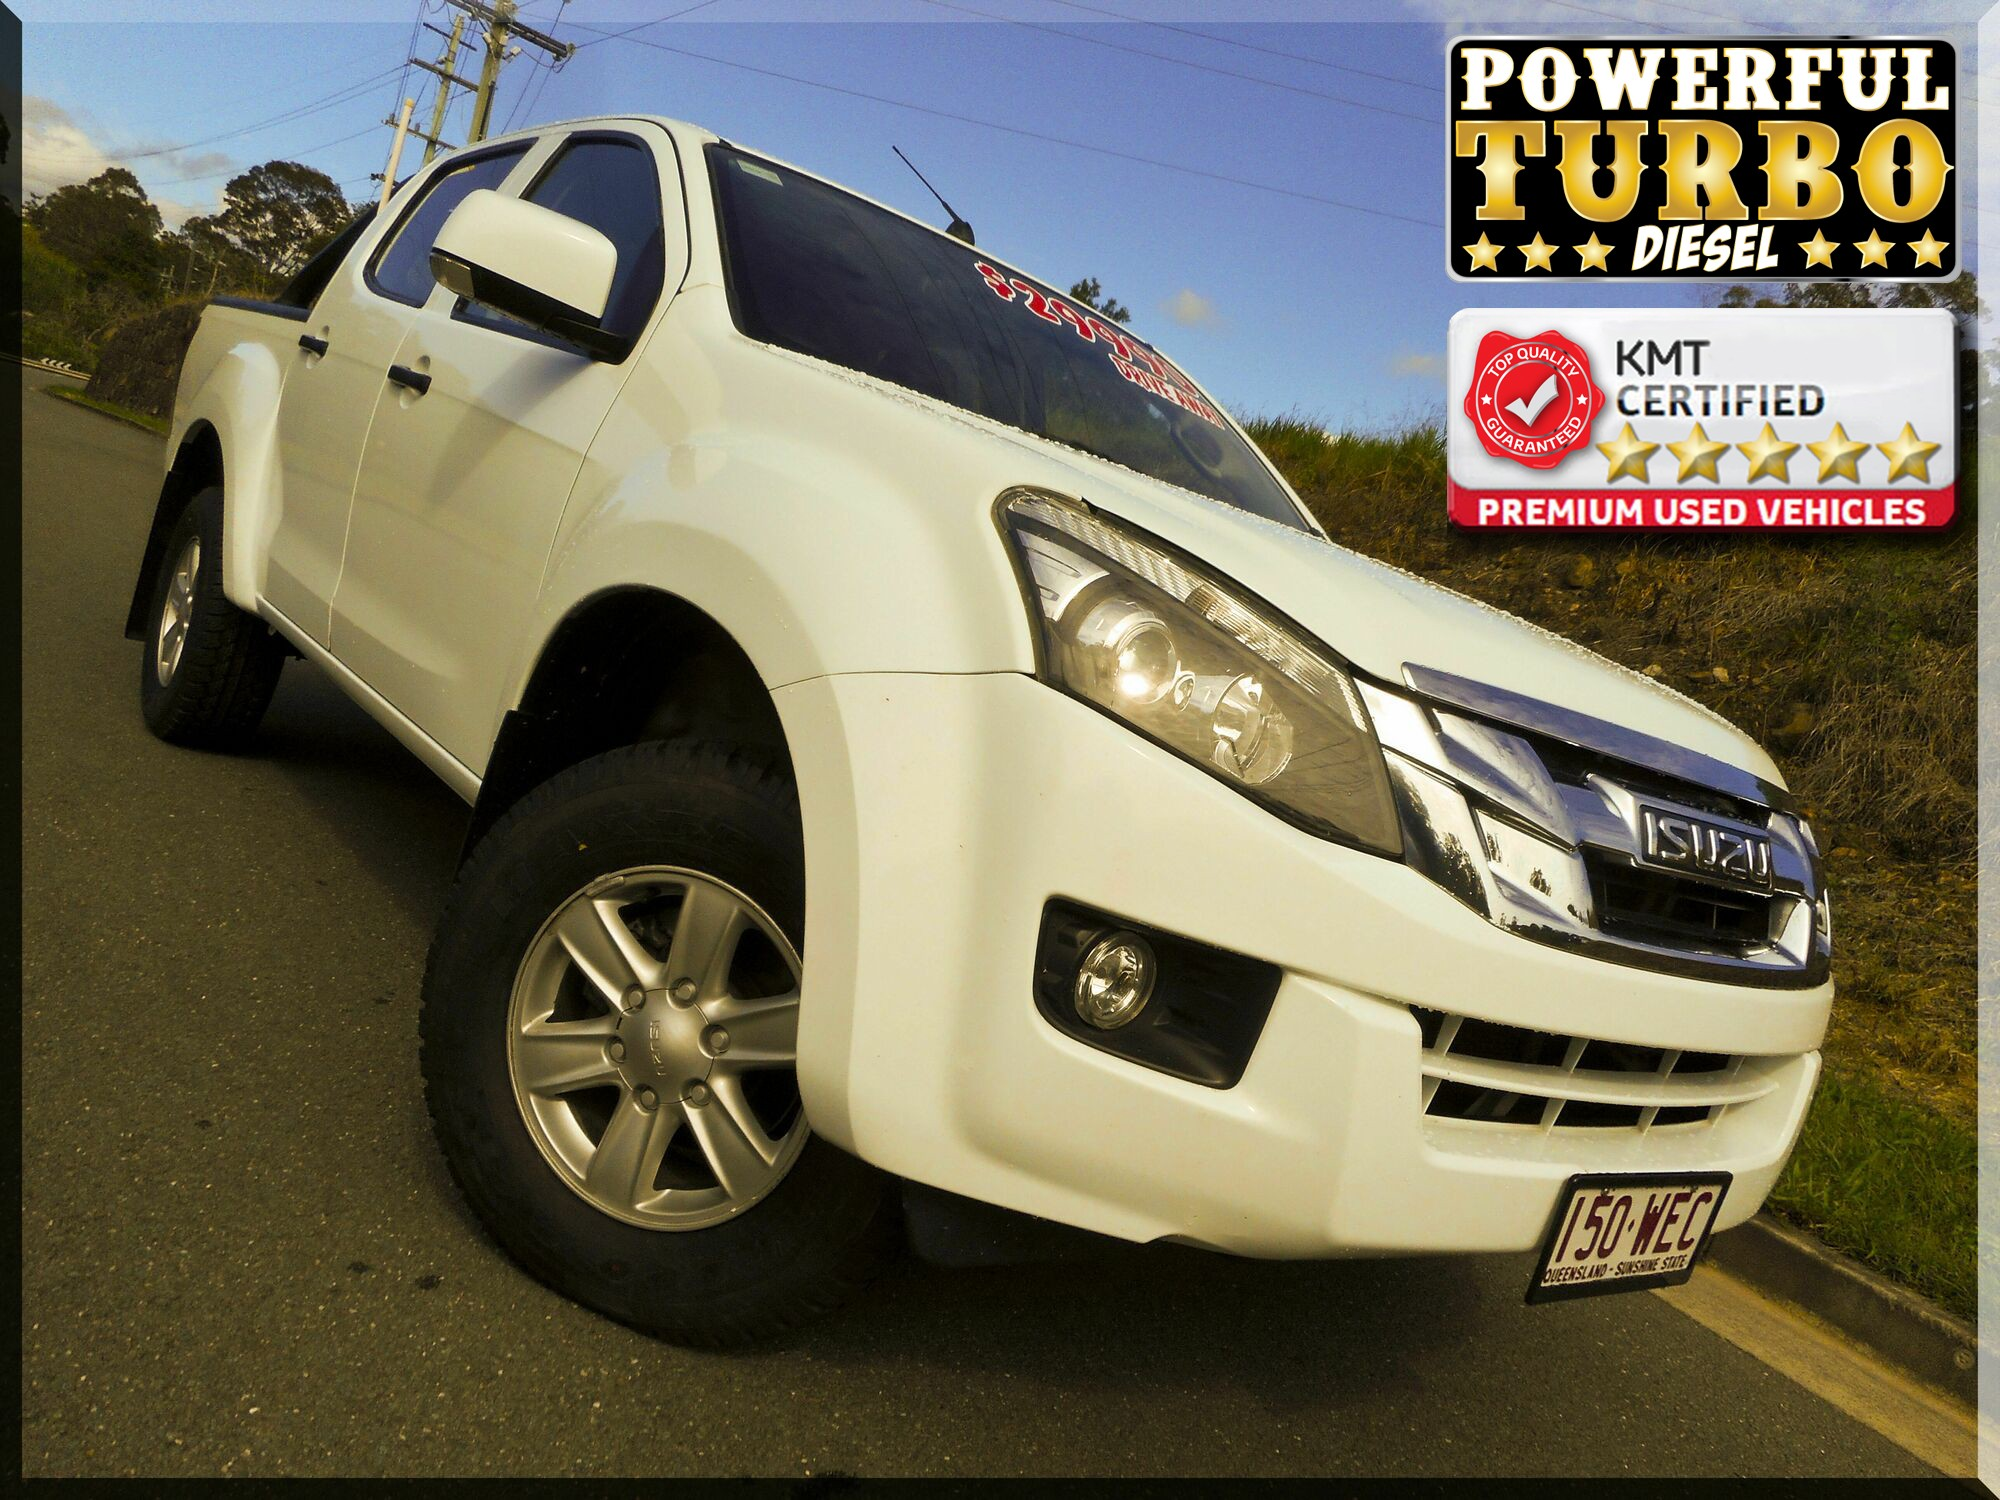 4 new used demo isuzu d max turbo sel 4x4 for sale sunshine coast qld